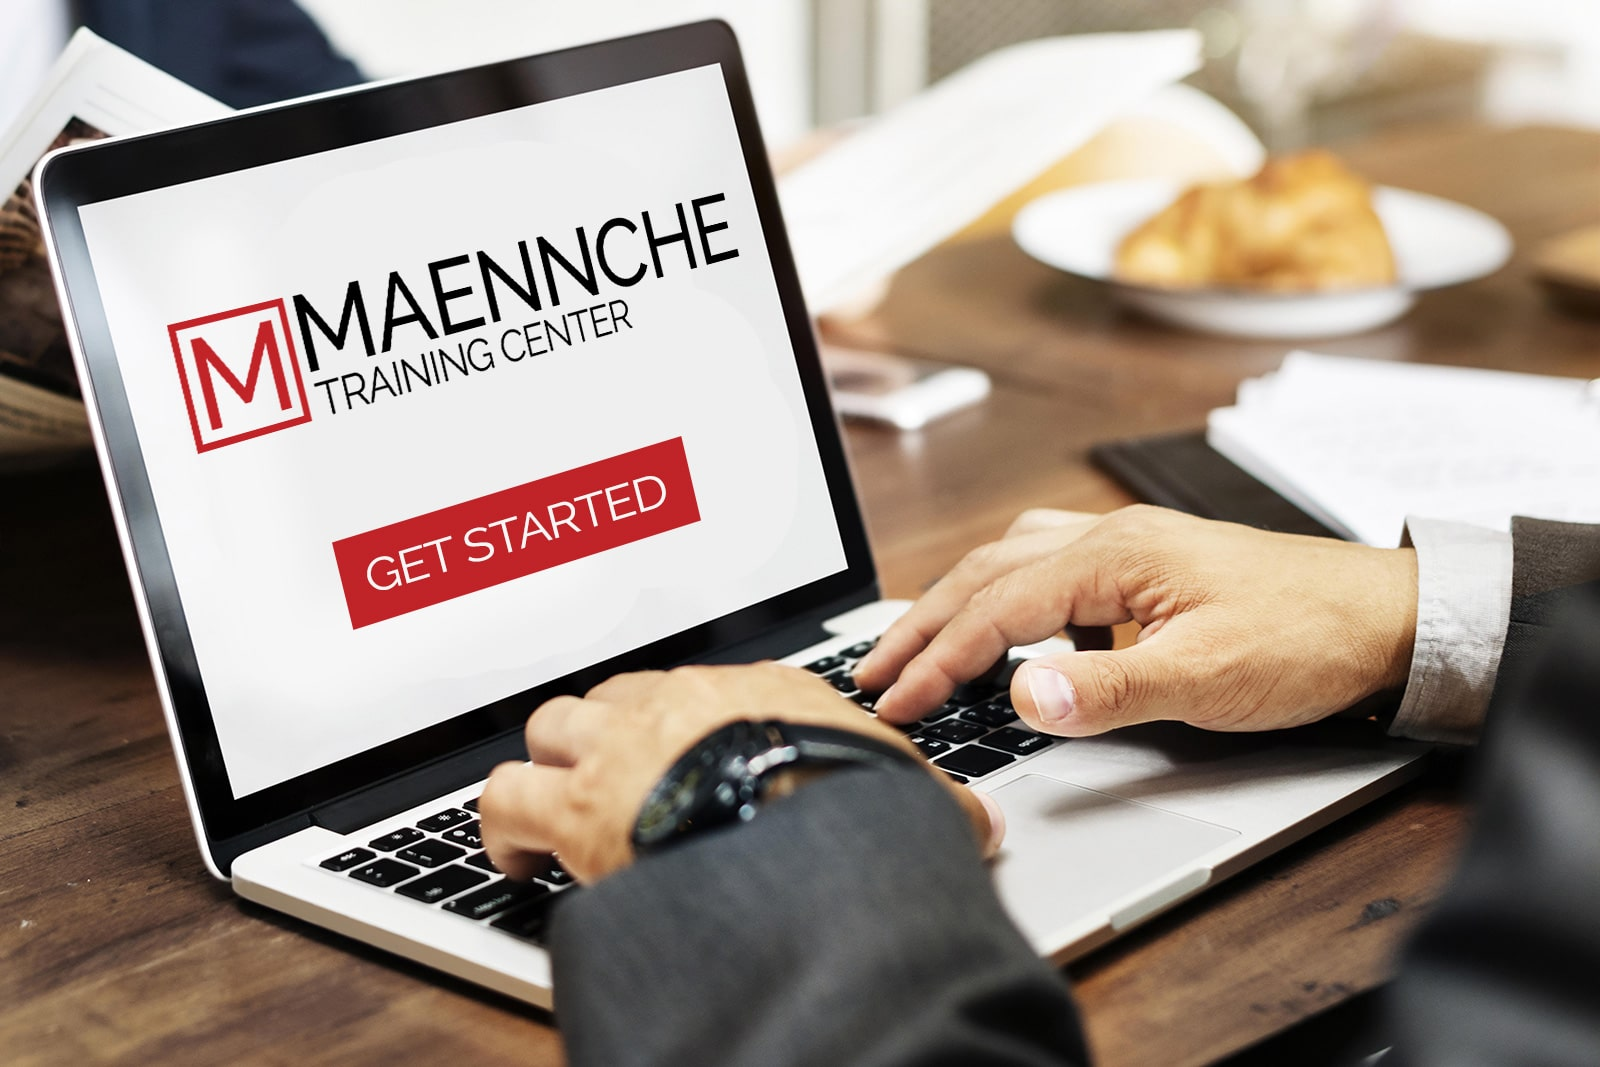 MyVCMO Announces the Maennche Training Center thumbnail image